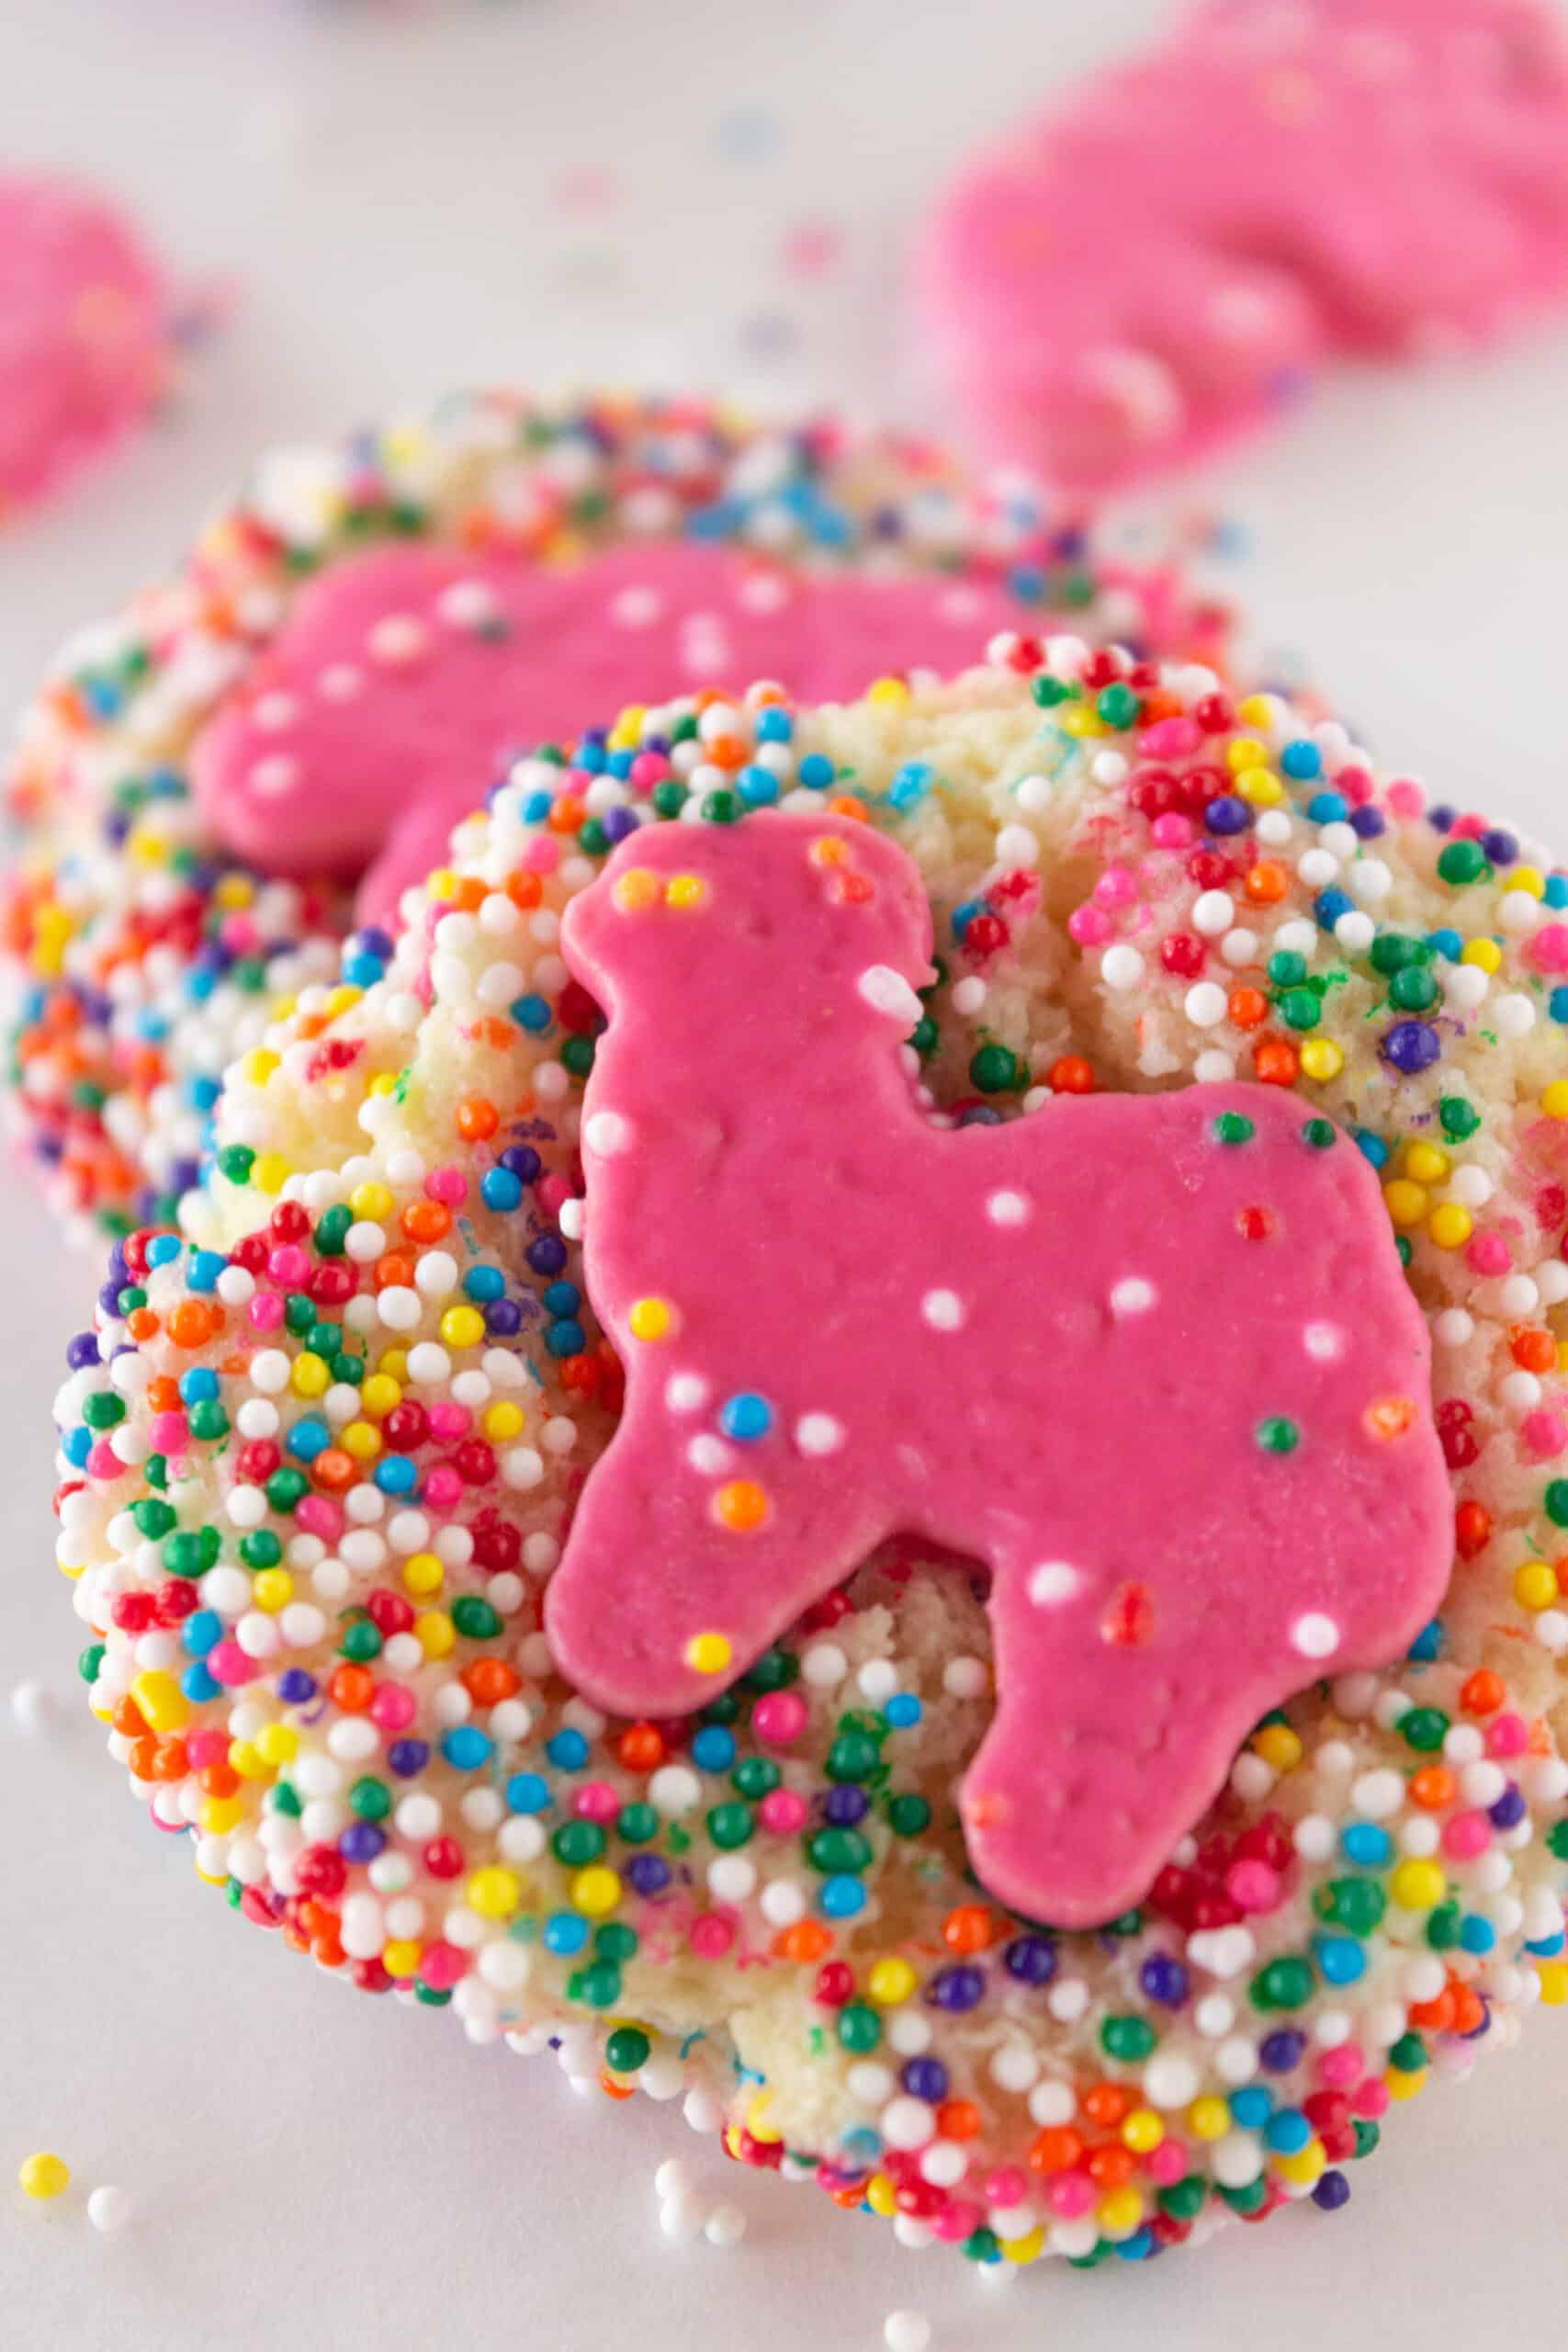 Frosted Animal Cookies Recipe made with a cake mix, featured by top US cookies blogger, Practically Homemade